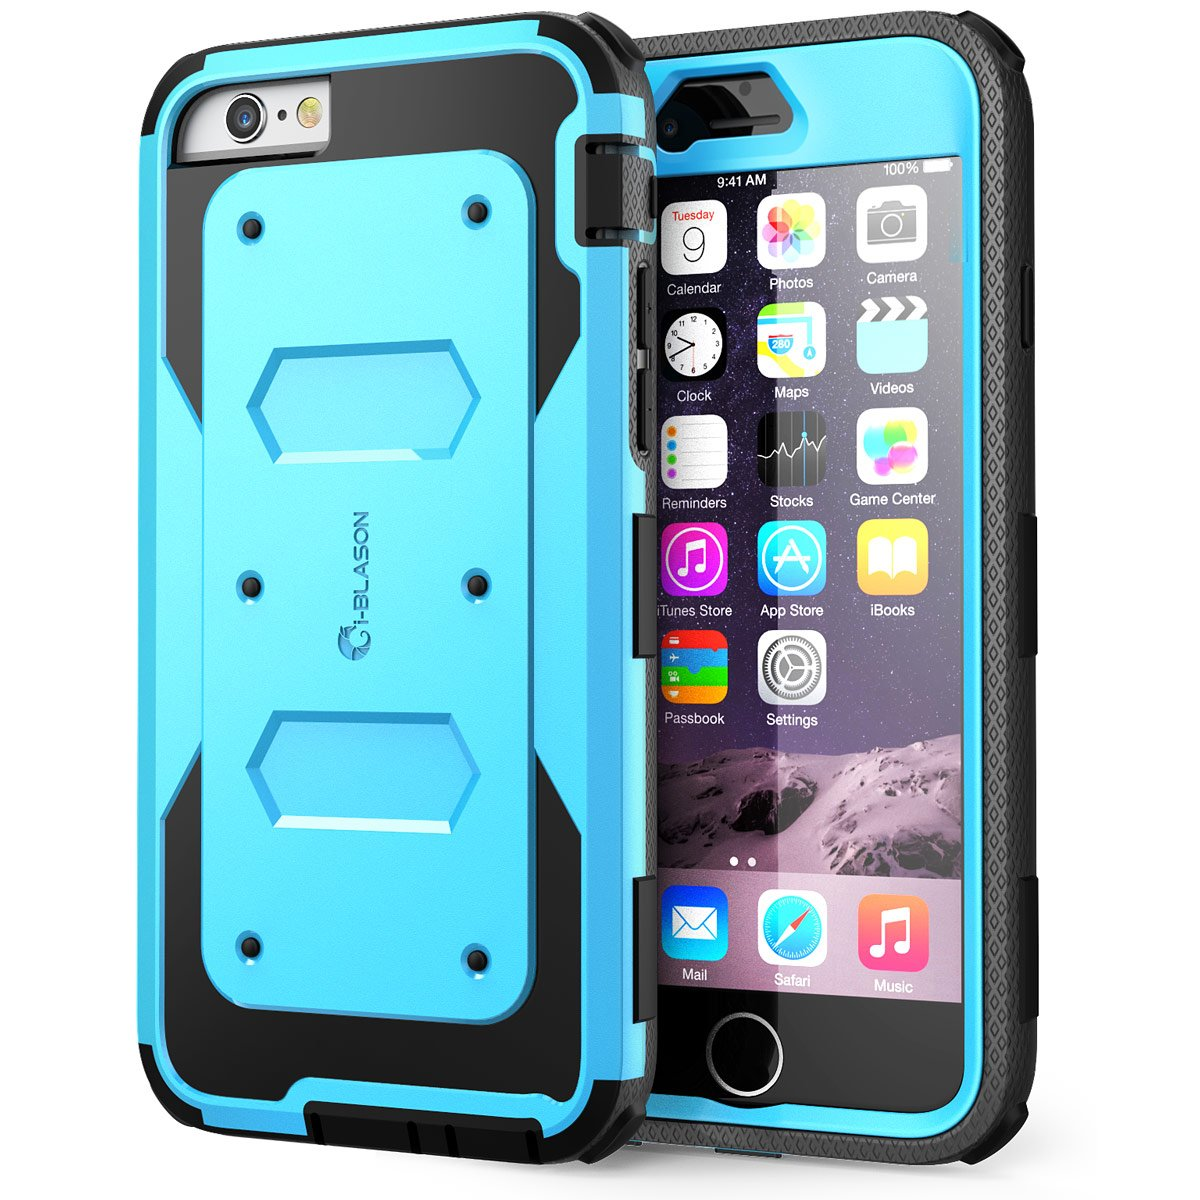 brand new 61ff2 c0686 iPhone 6s Plus Case, [Armorbox] i-Blason Built-in [Screen Protector] Heavy  Duty Shock Reduction [Bumper] for Apple iPhone 6 Plus 5.5 Inch (Blue)